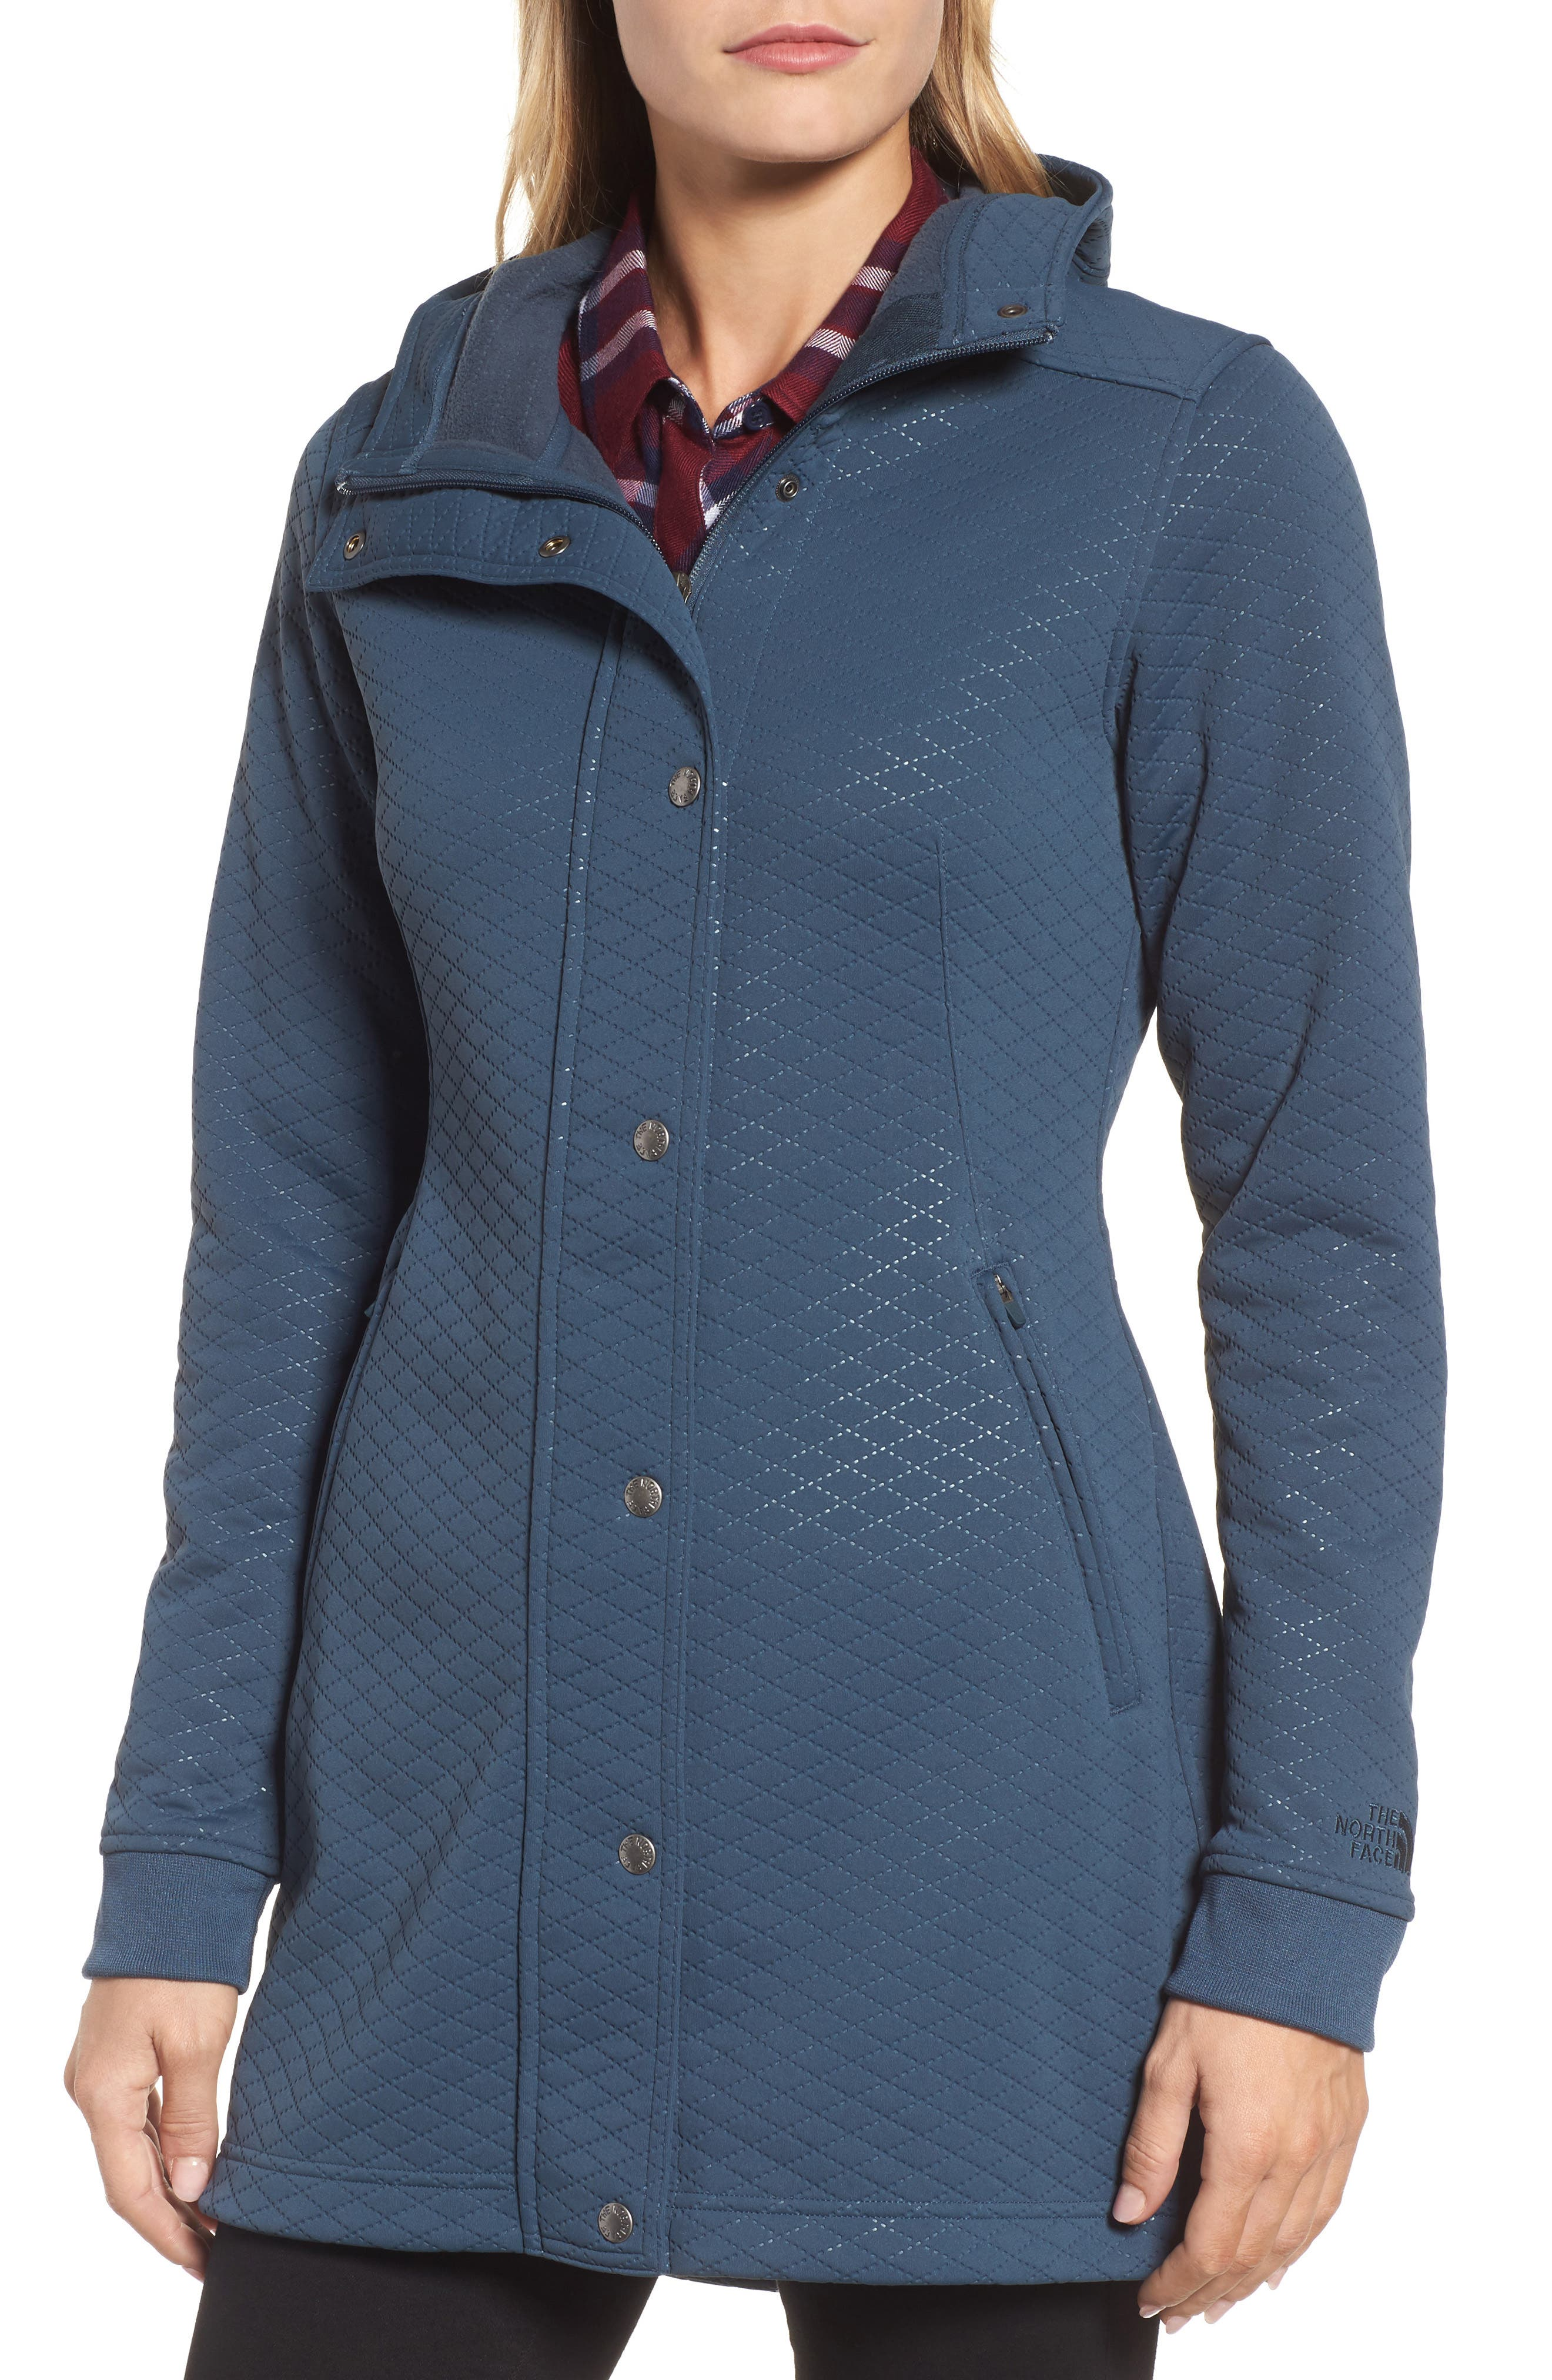 Recover-Up Jacket,                             Alternate thumbnail 8, color,